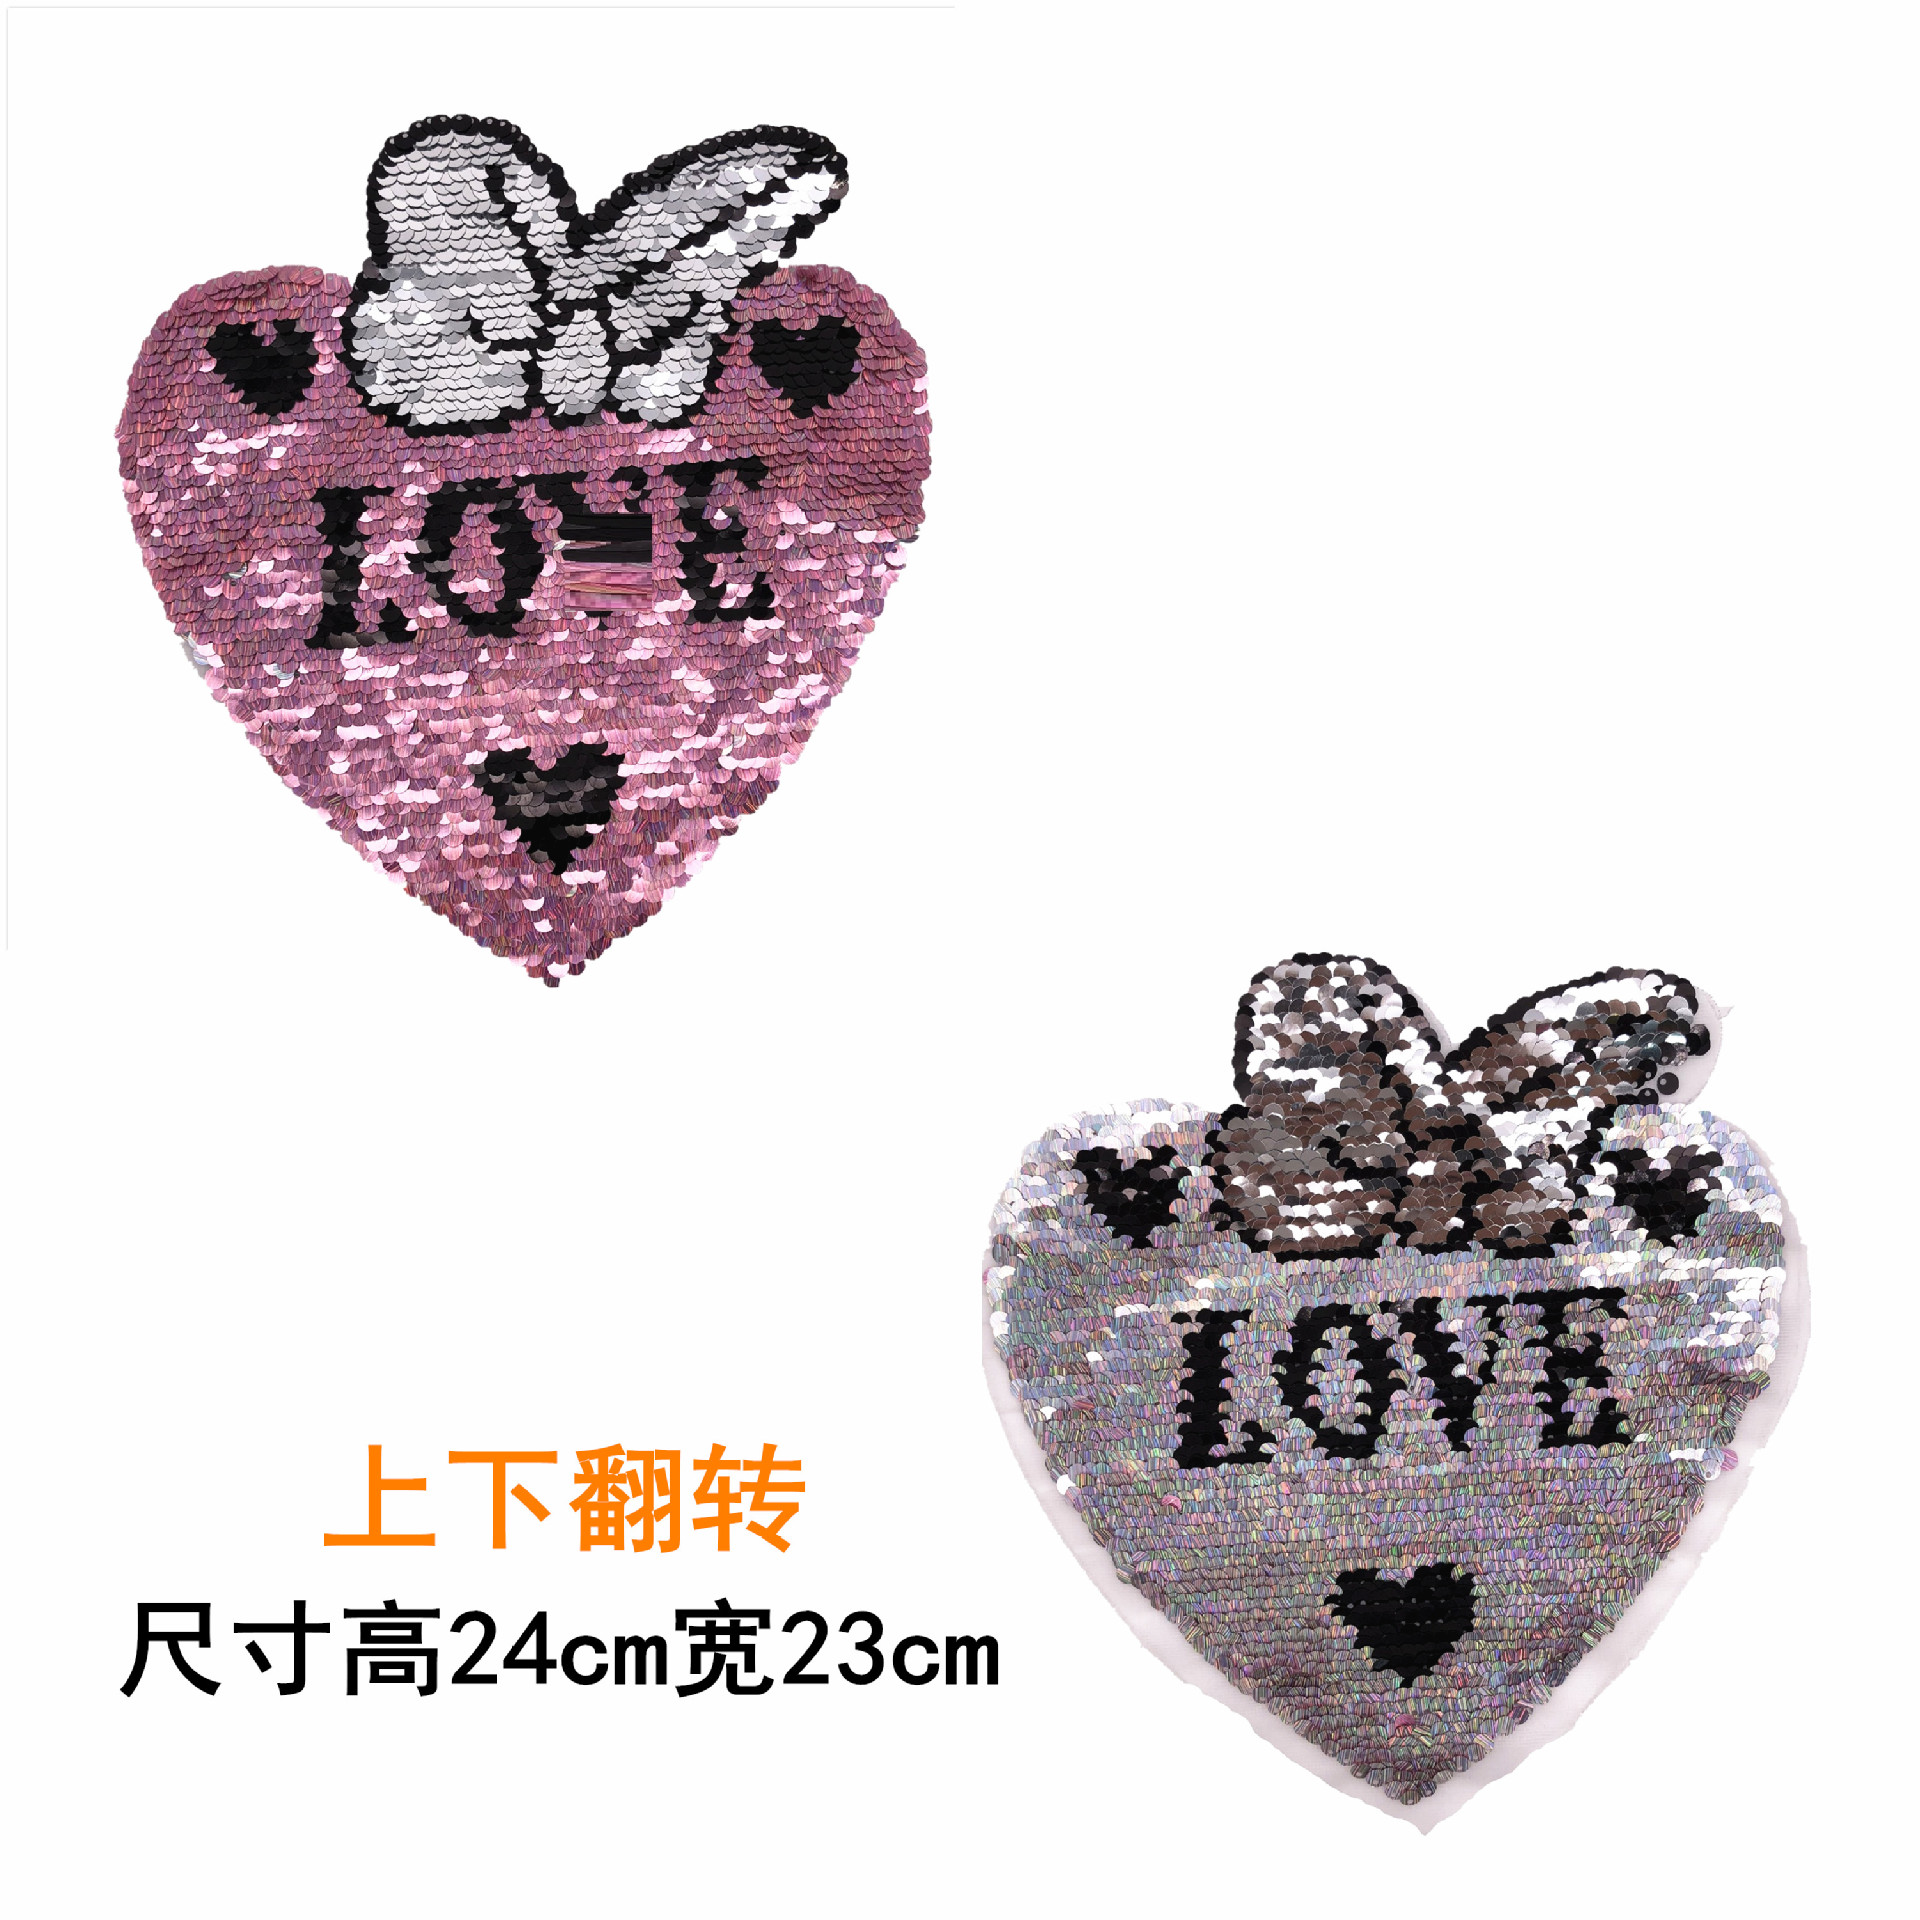 3-D Love Flip-flop Cloth With Sequins, Hand-made Cloth With Embroidered Decals, Beads, DIY Patches And Clothing T-shirts